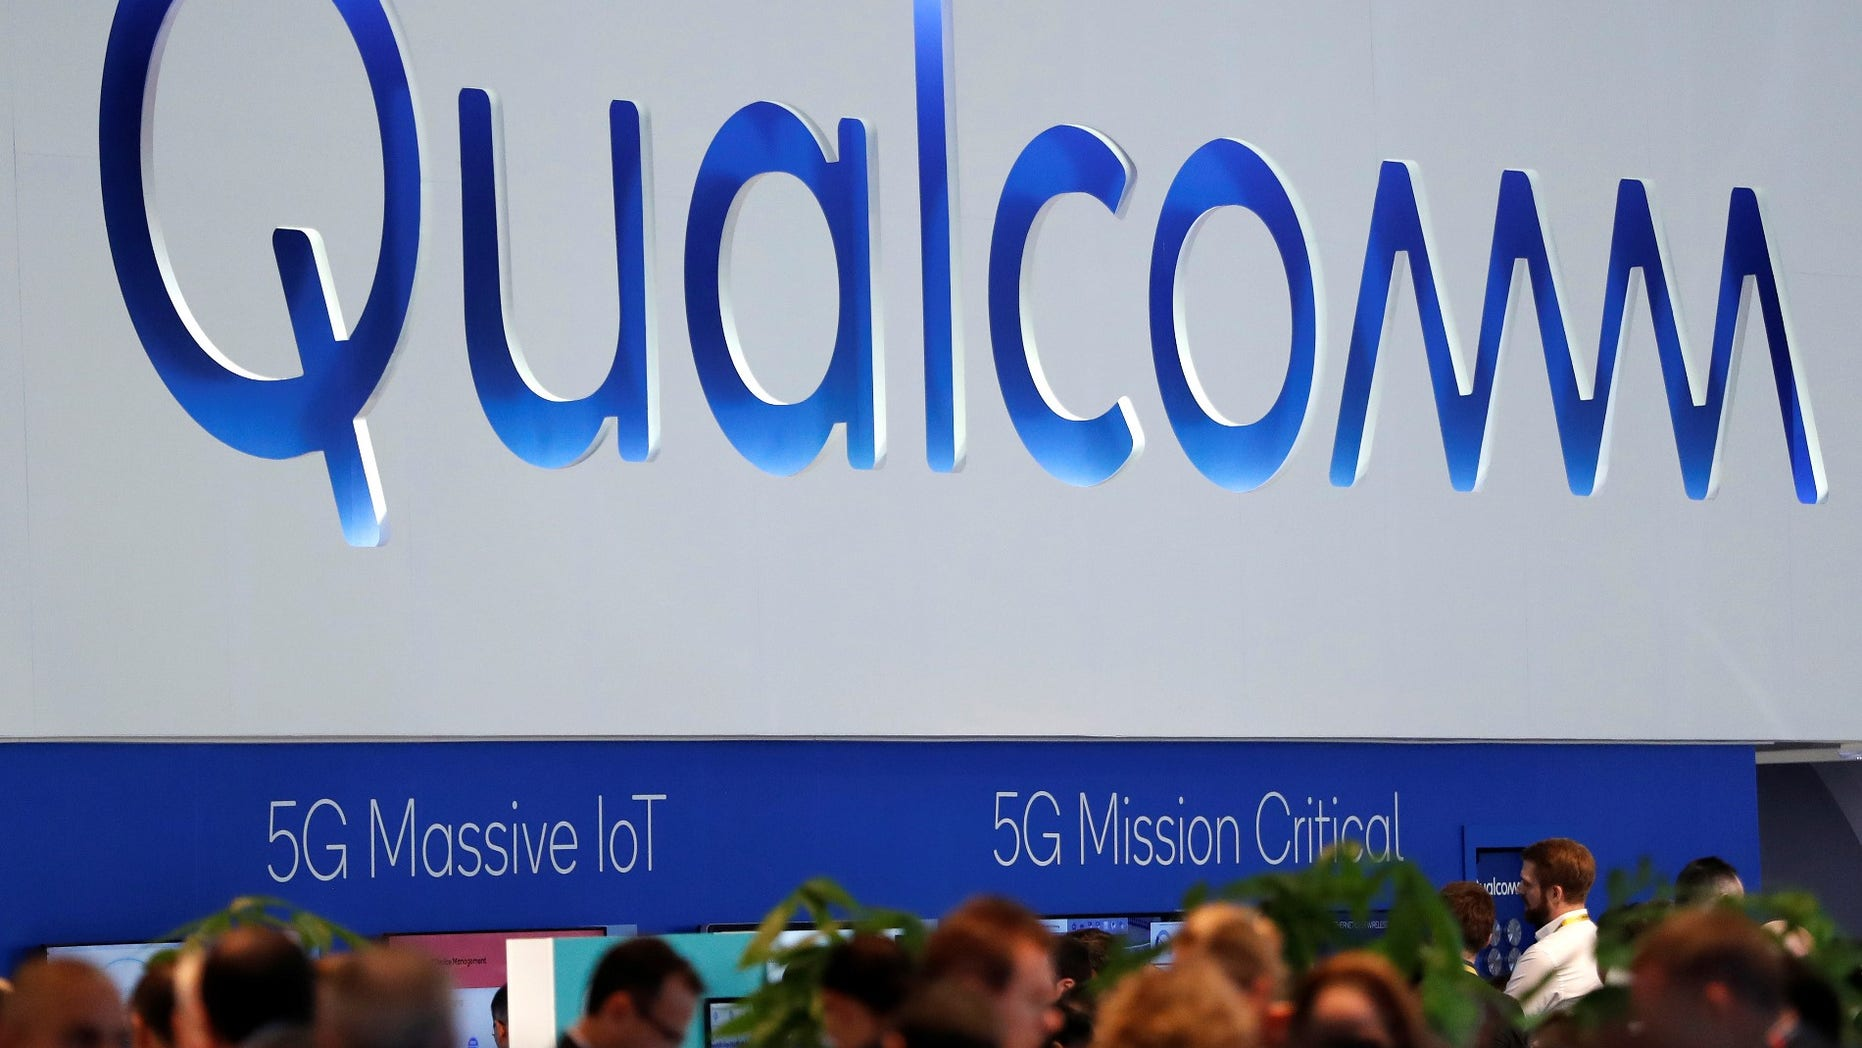 FILE -- The logo of Qualcomm is seen during the Mobile World Congress in Barcelona, Spain February 27, 2018.